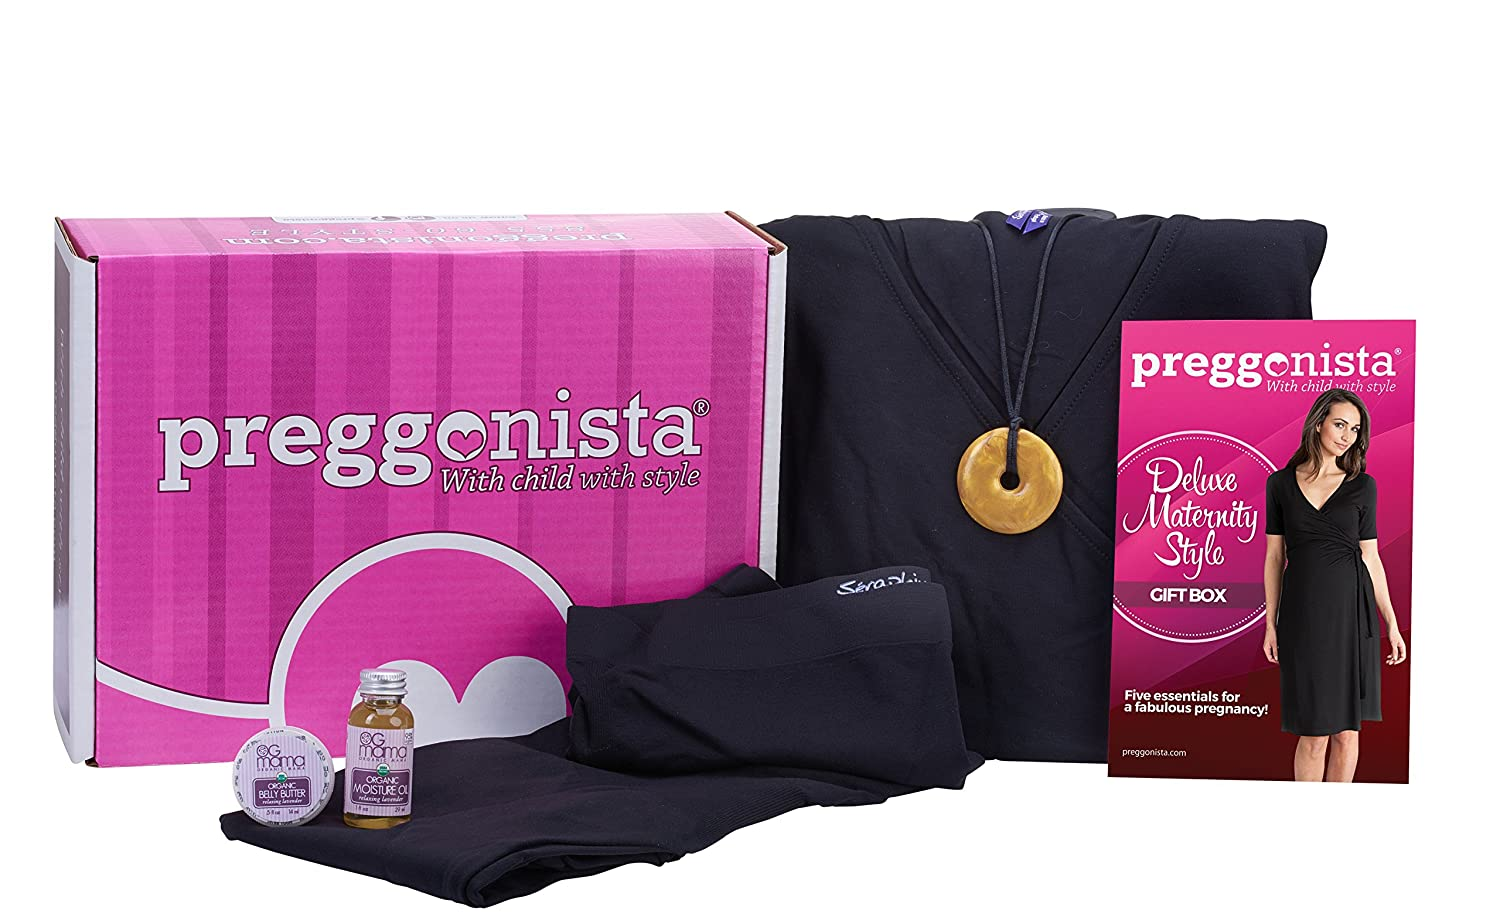 Preggonista 5-Piece Deluxe Maternity Style Gift Box 86347200021902